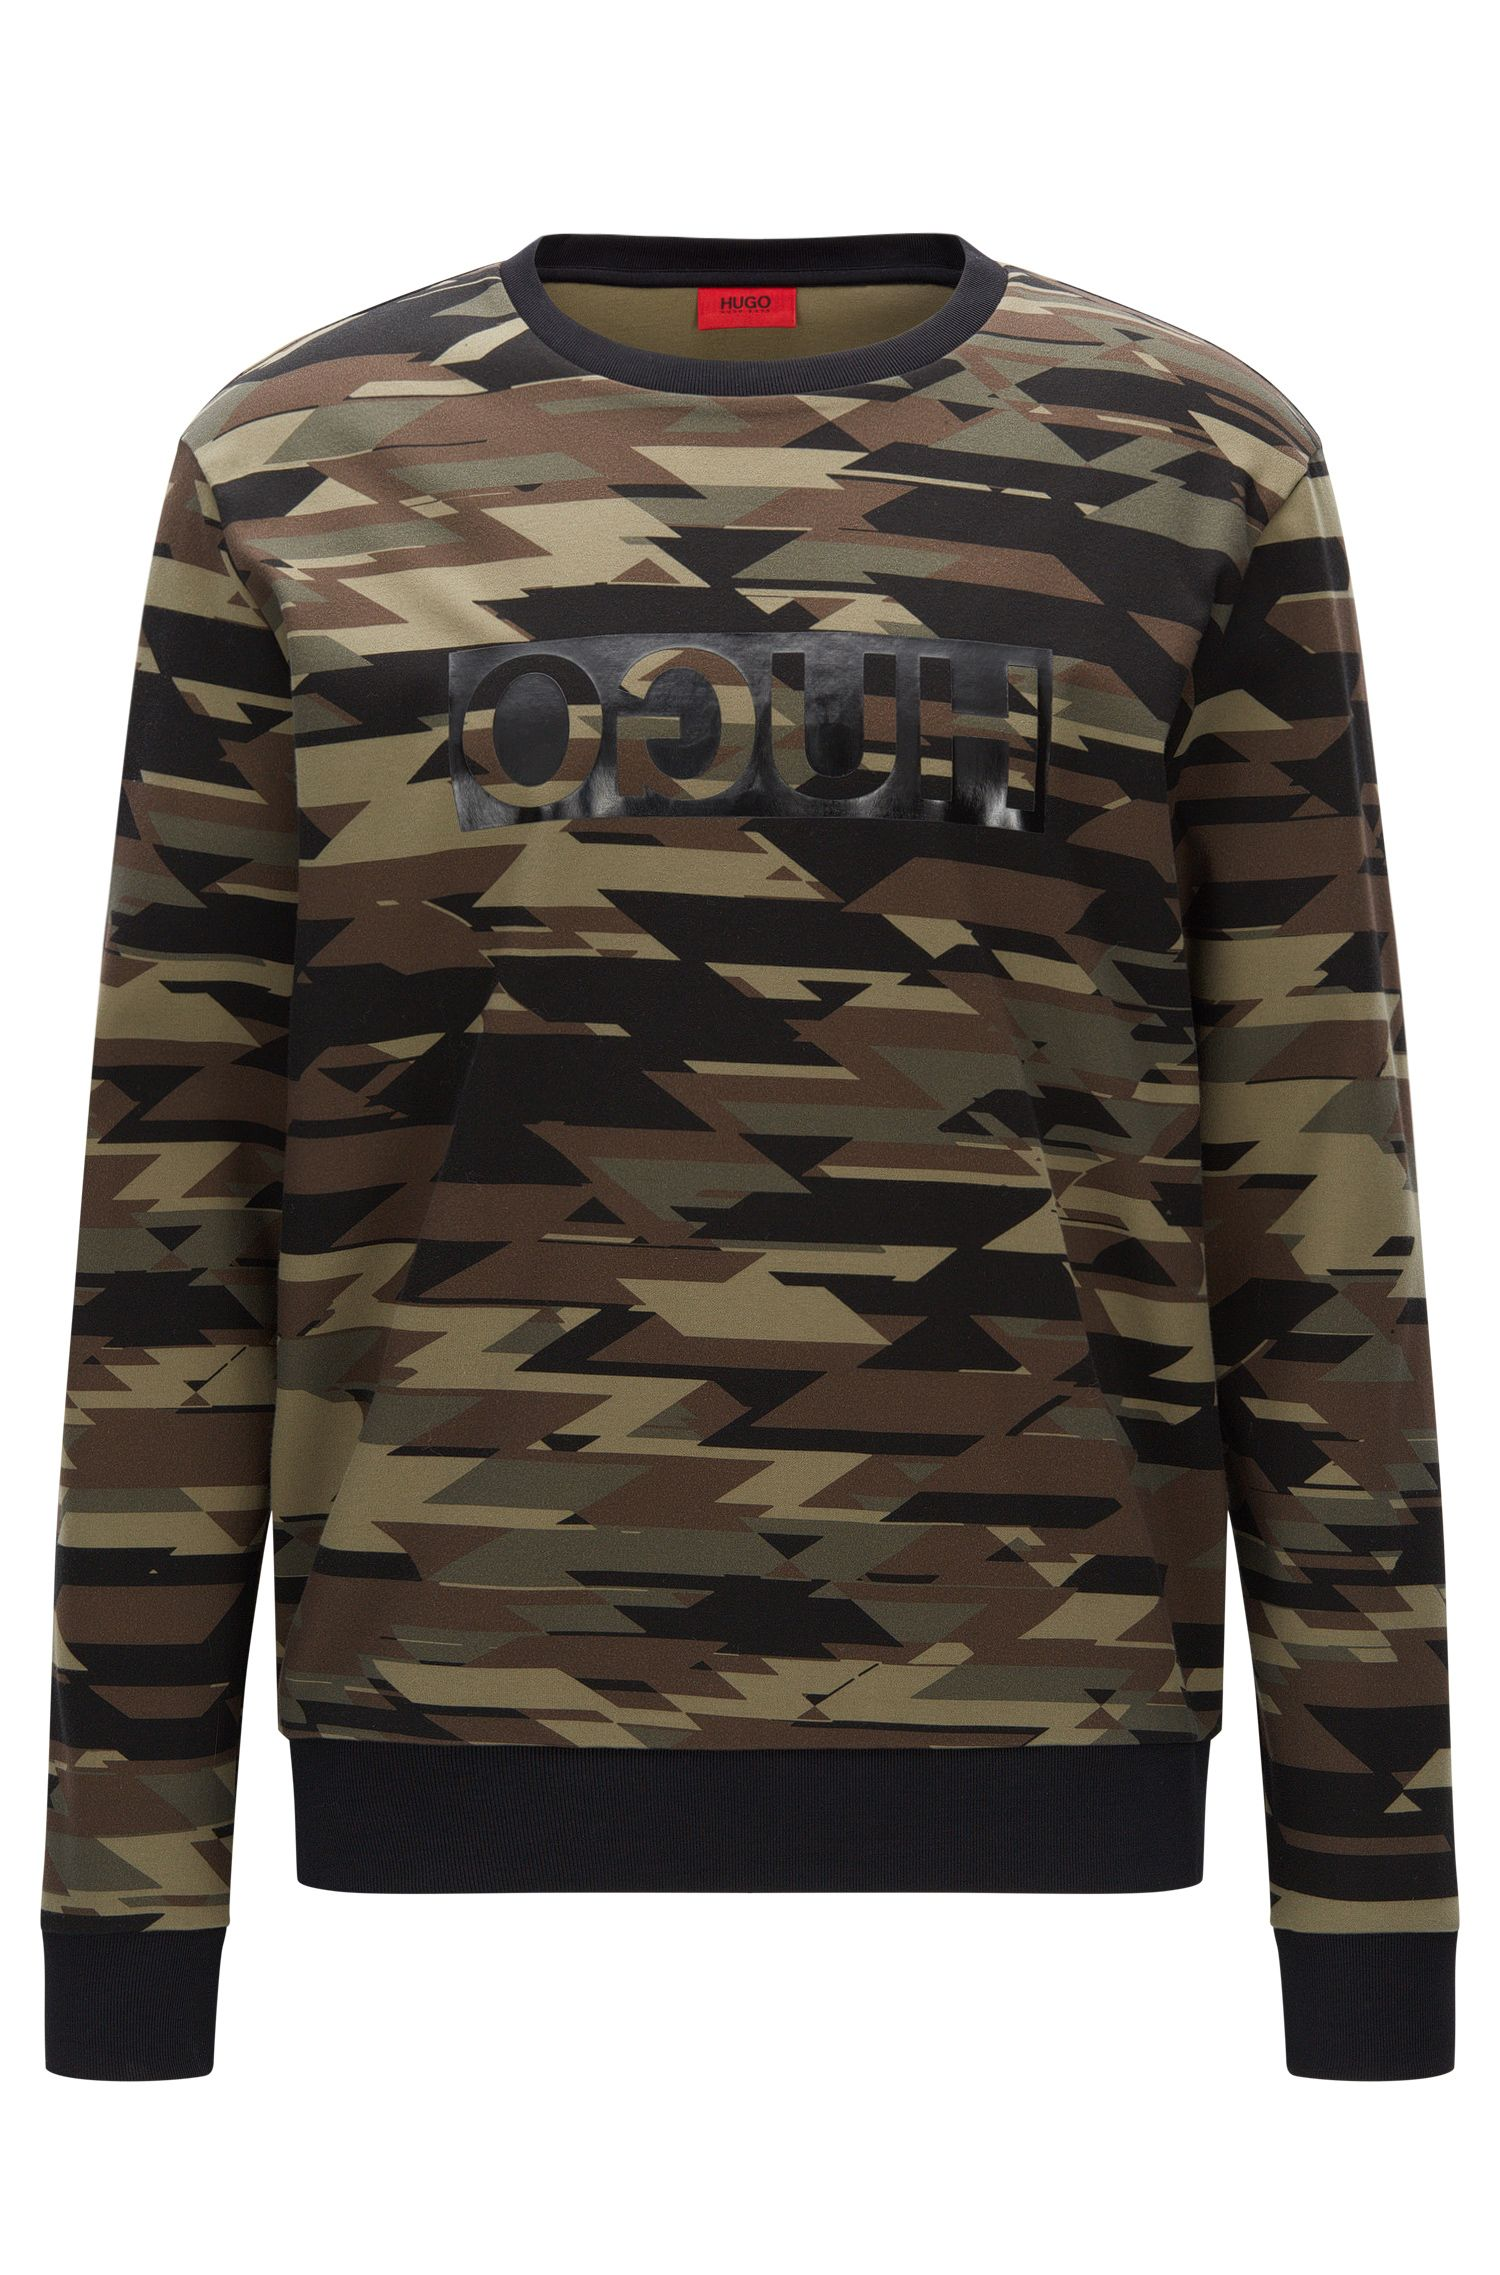 Oversized camouflage-print sweatshirt in interlock cotton